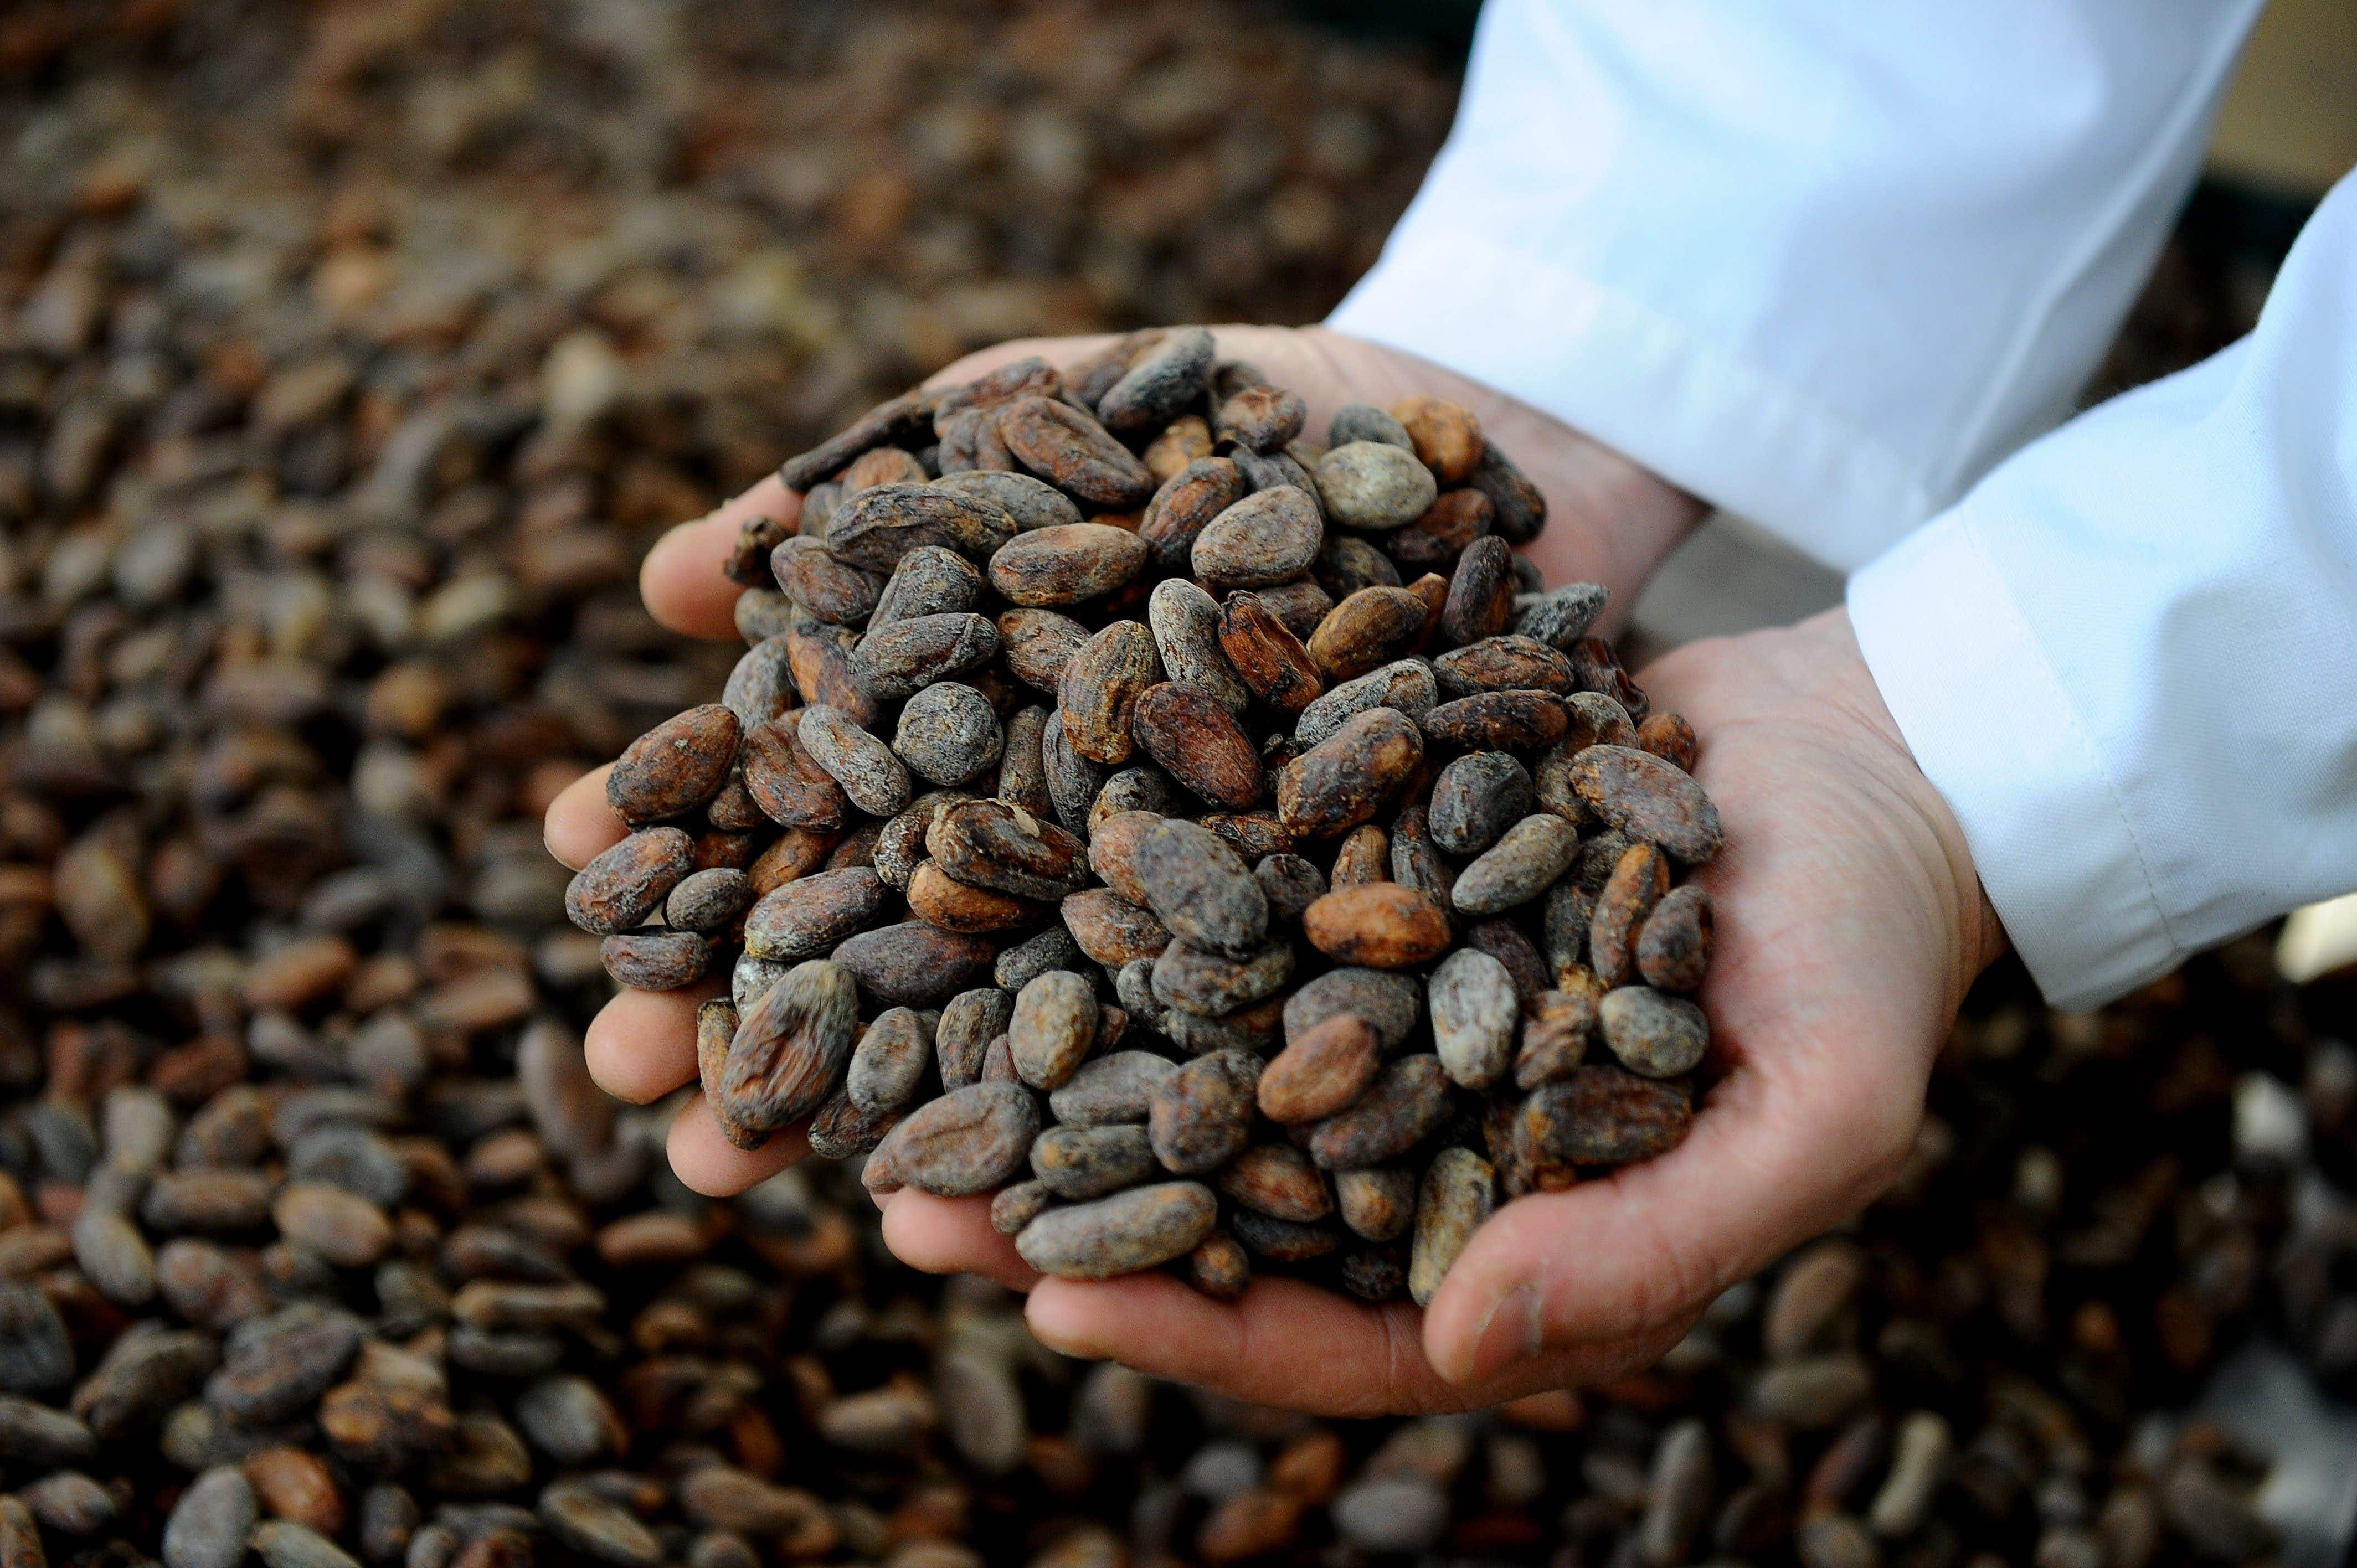 Spilling the beans: exploring Ecuador's elusive chocolate industry